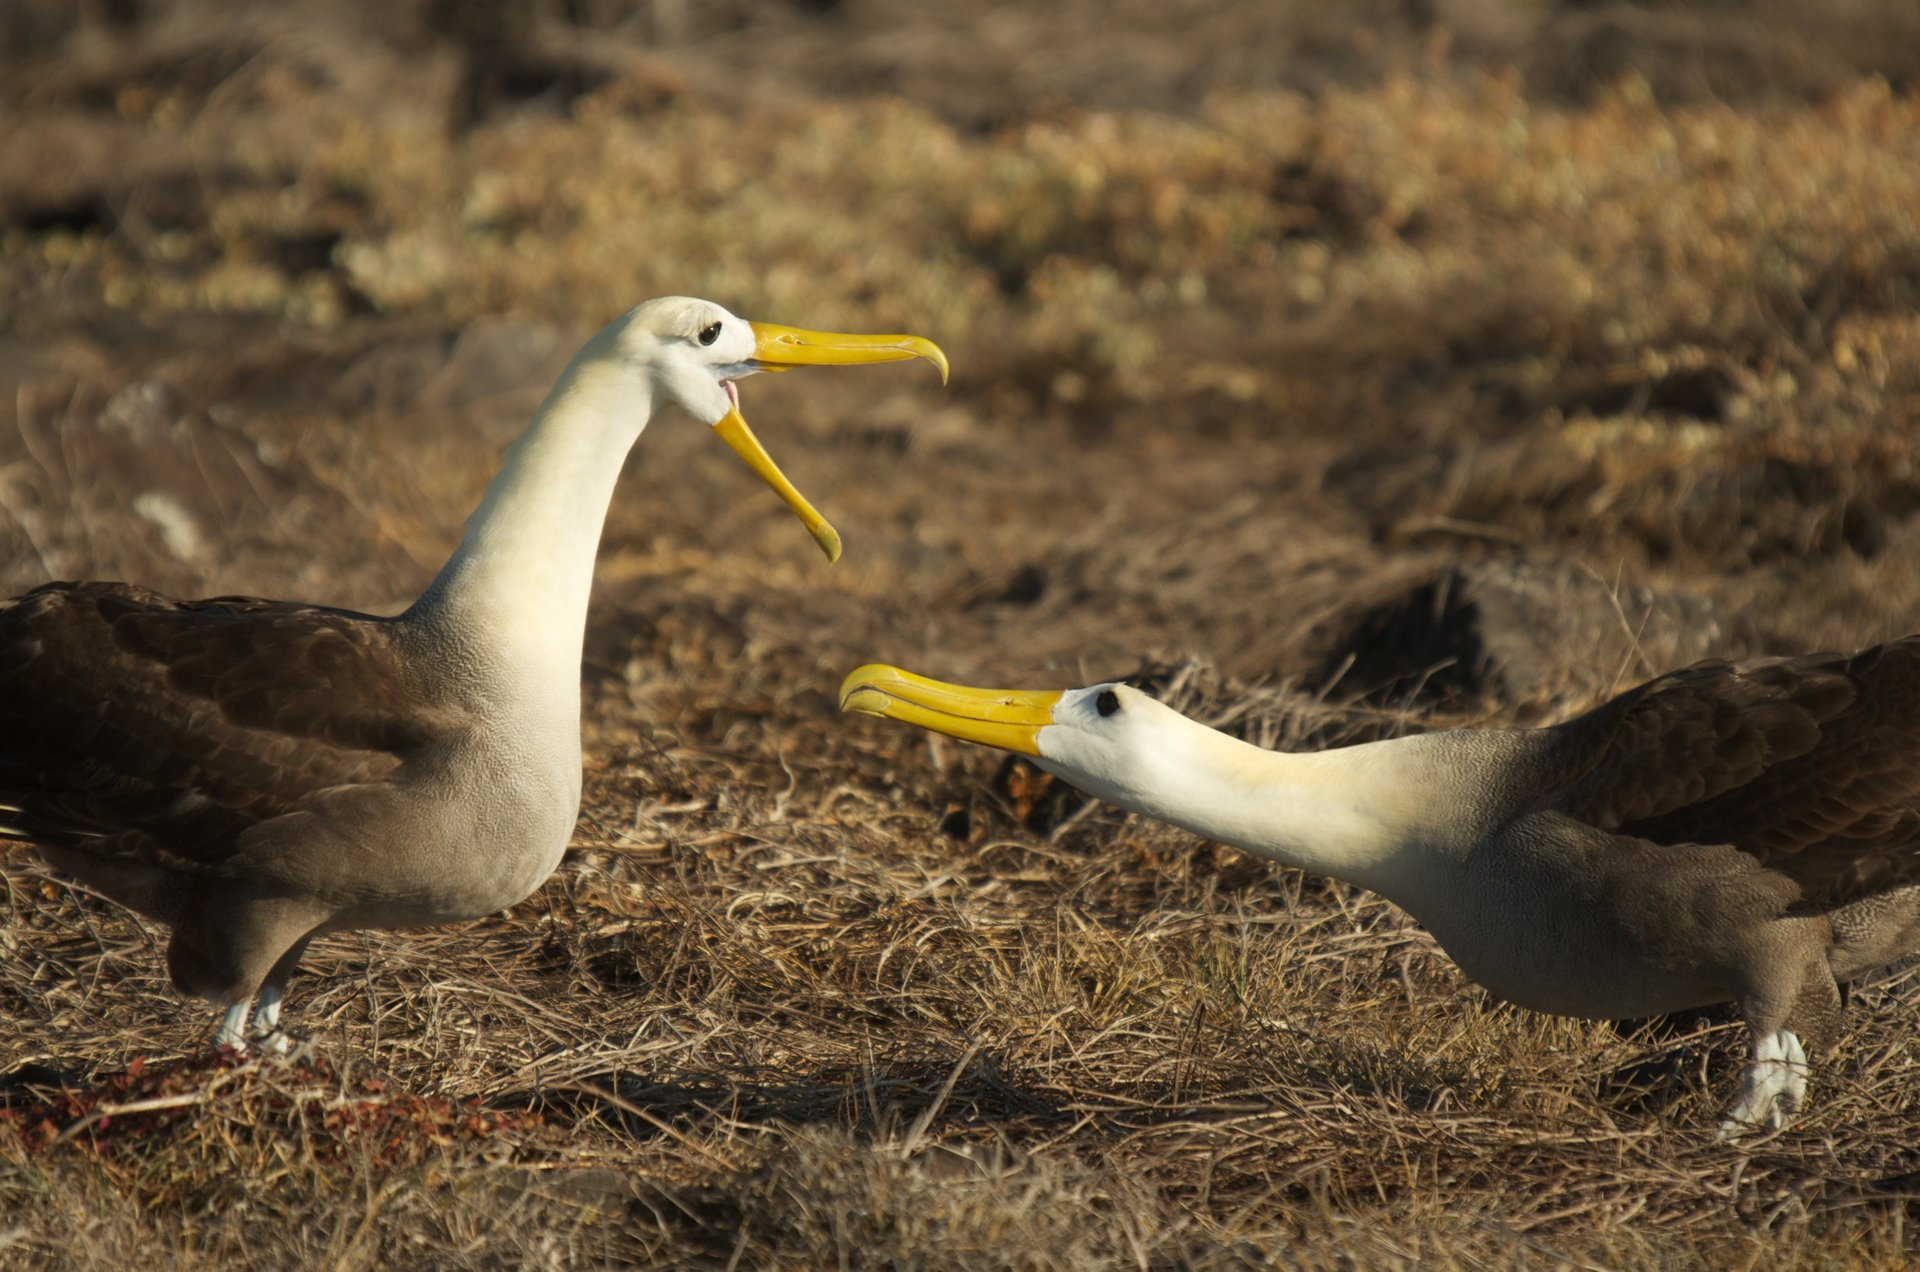 Waved Albatross in Galapagos Islands 2020 - Best Time